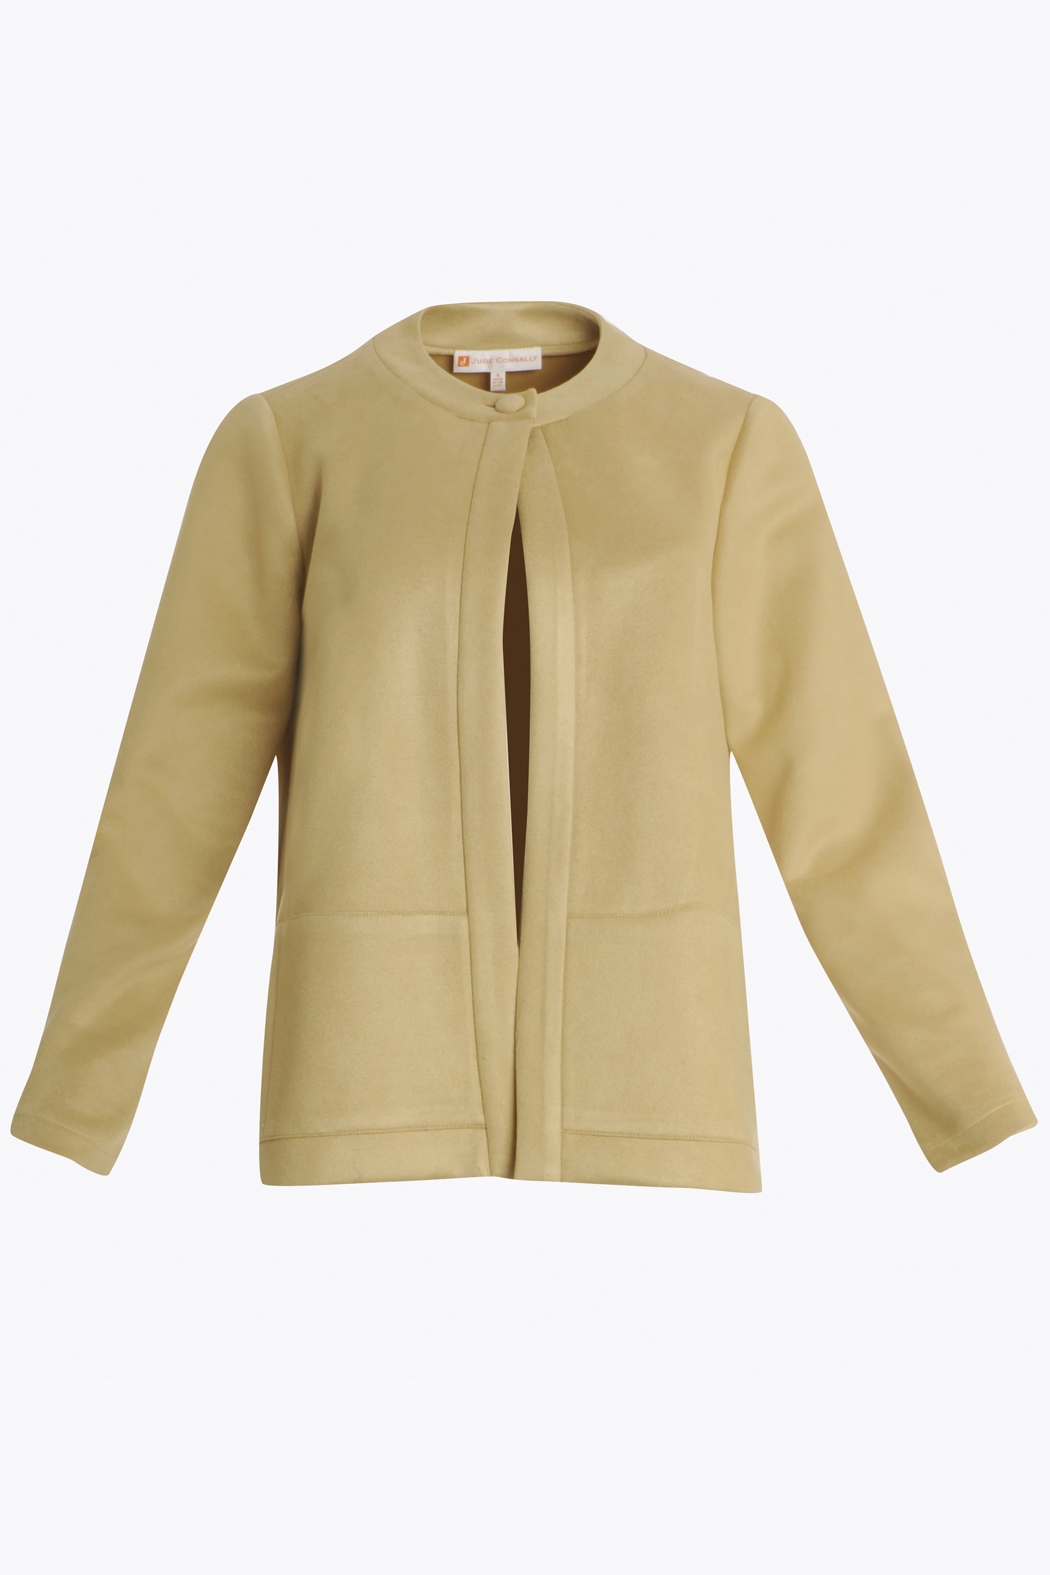 Jude Connally Clover Faux-Suede Jacket - Side Cropped Image